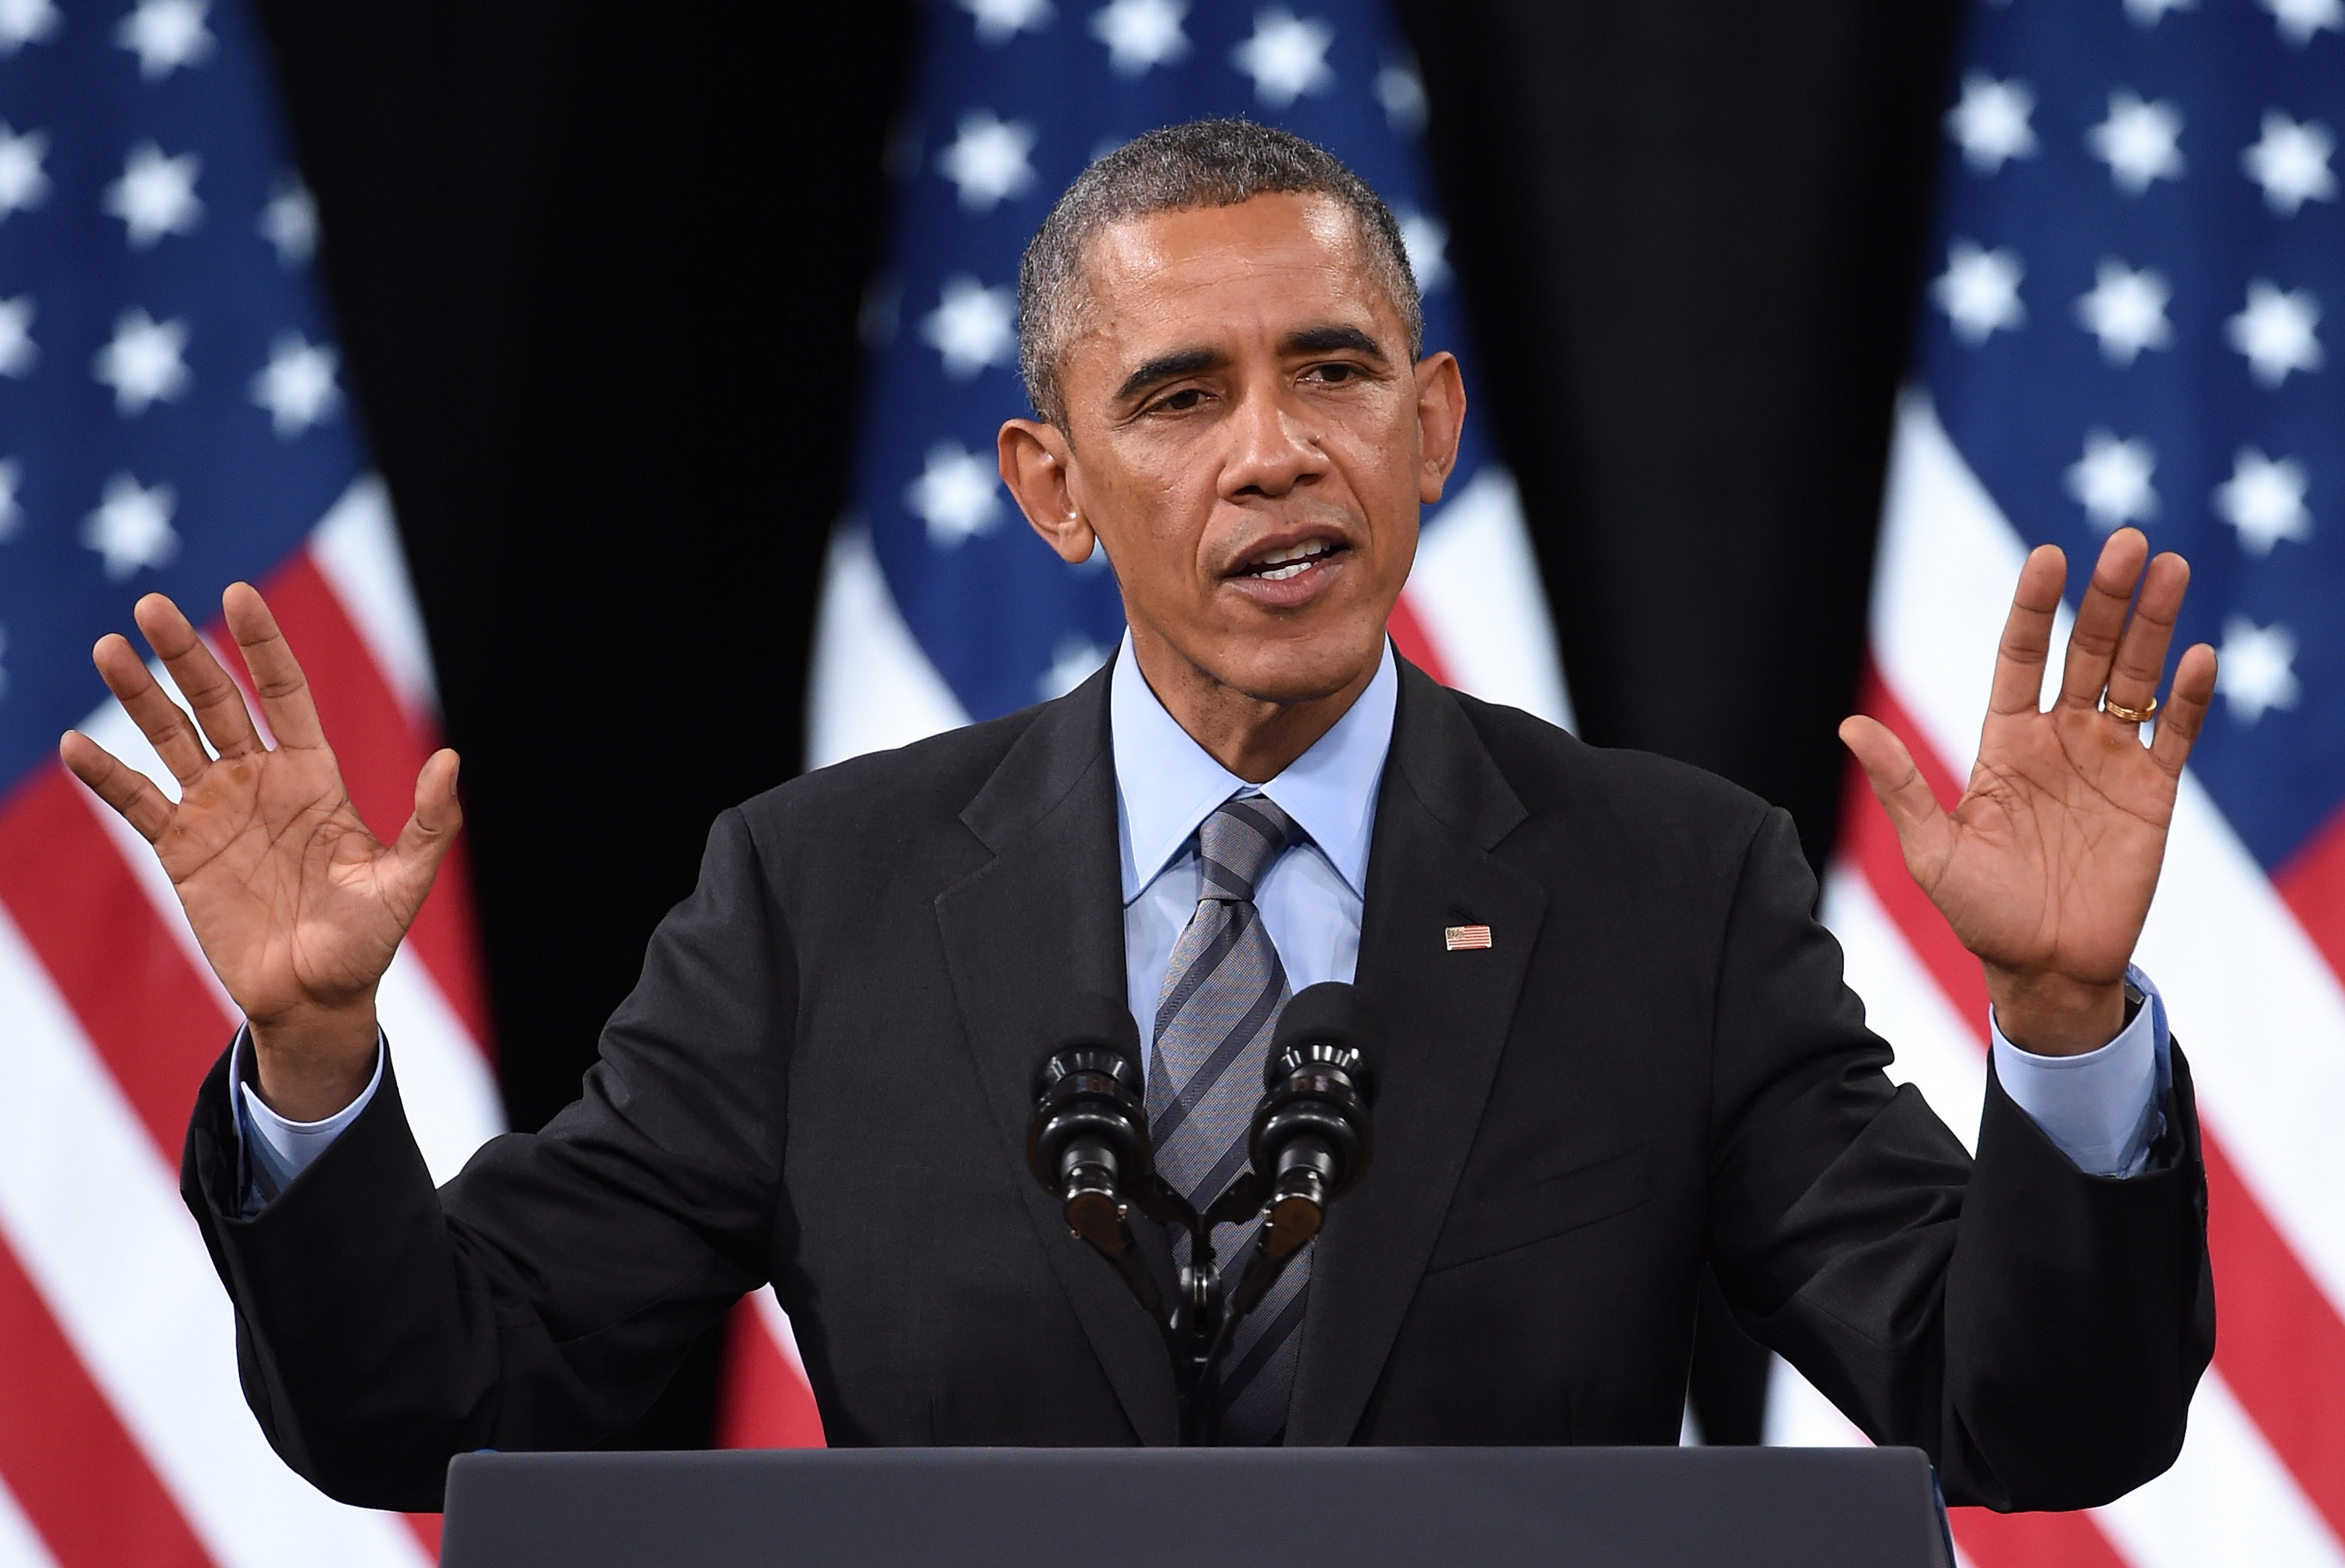 U.S. President Barack Obama speaks about his executive action on U.S. immigration policy on Nov. 21, 2014, in Las Vegas